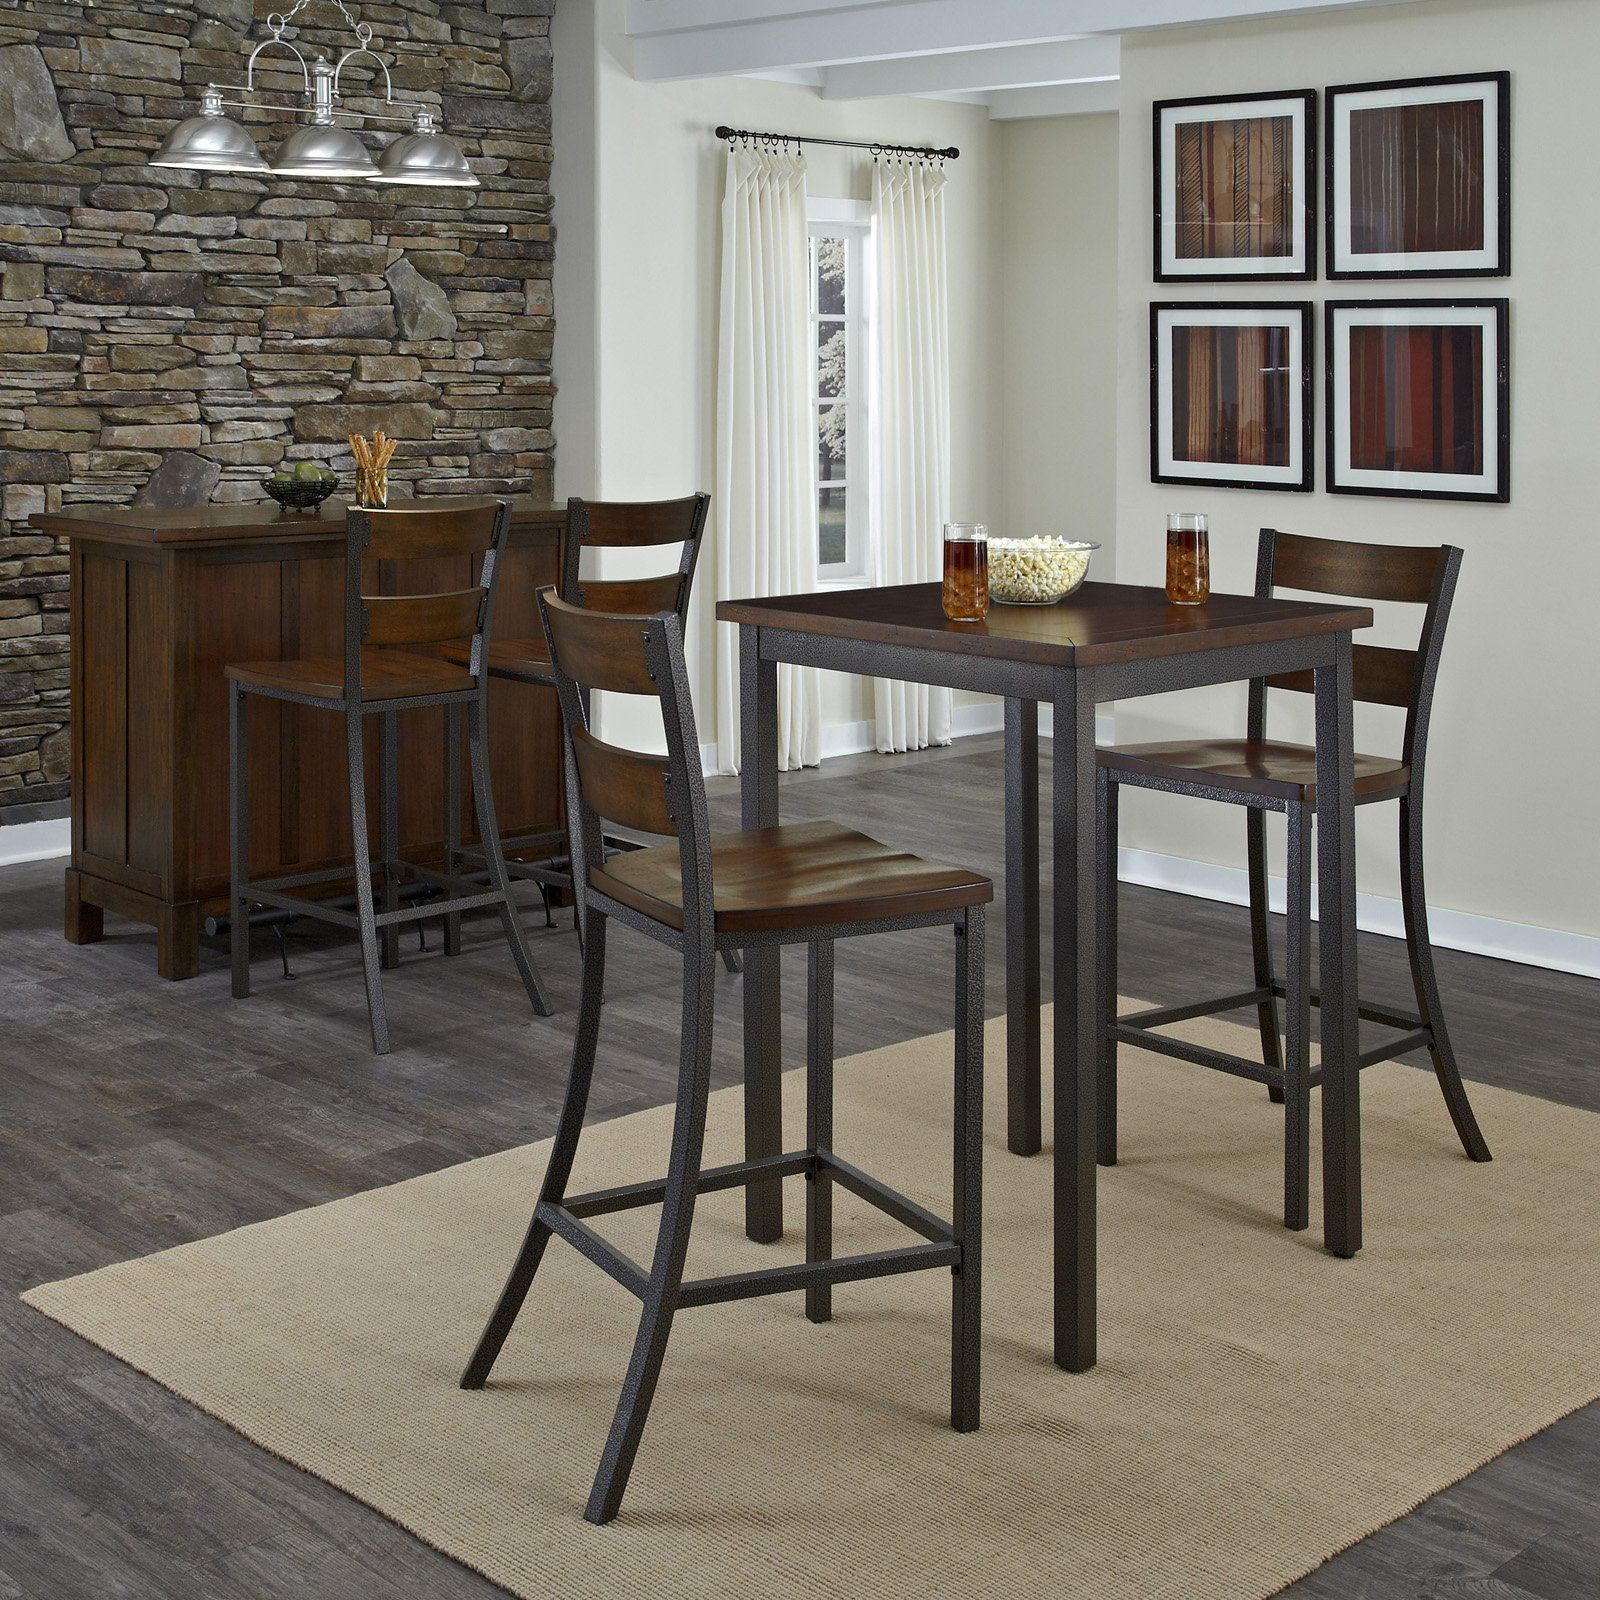 Home Styles Cabin Creek 3 Piece Square Pub Table Set - Just right for your home this Home Styles Cabin Creek 3 Piece Square Pub Table Set has bold ... : square pub table set - pezcame.com